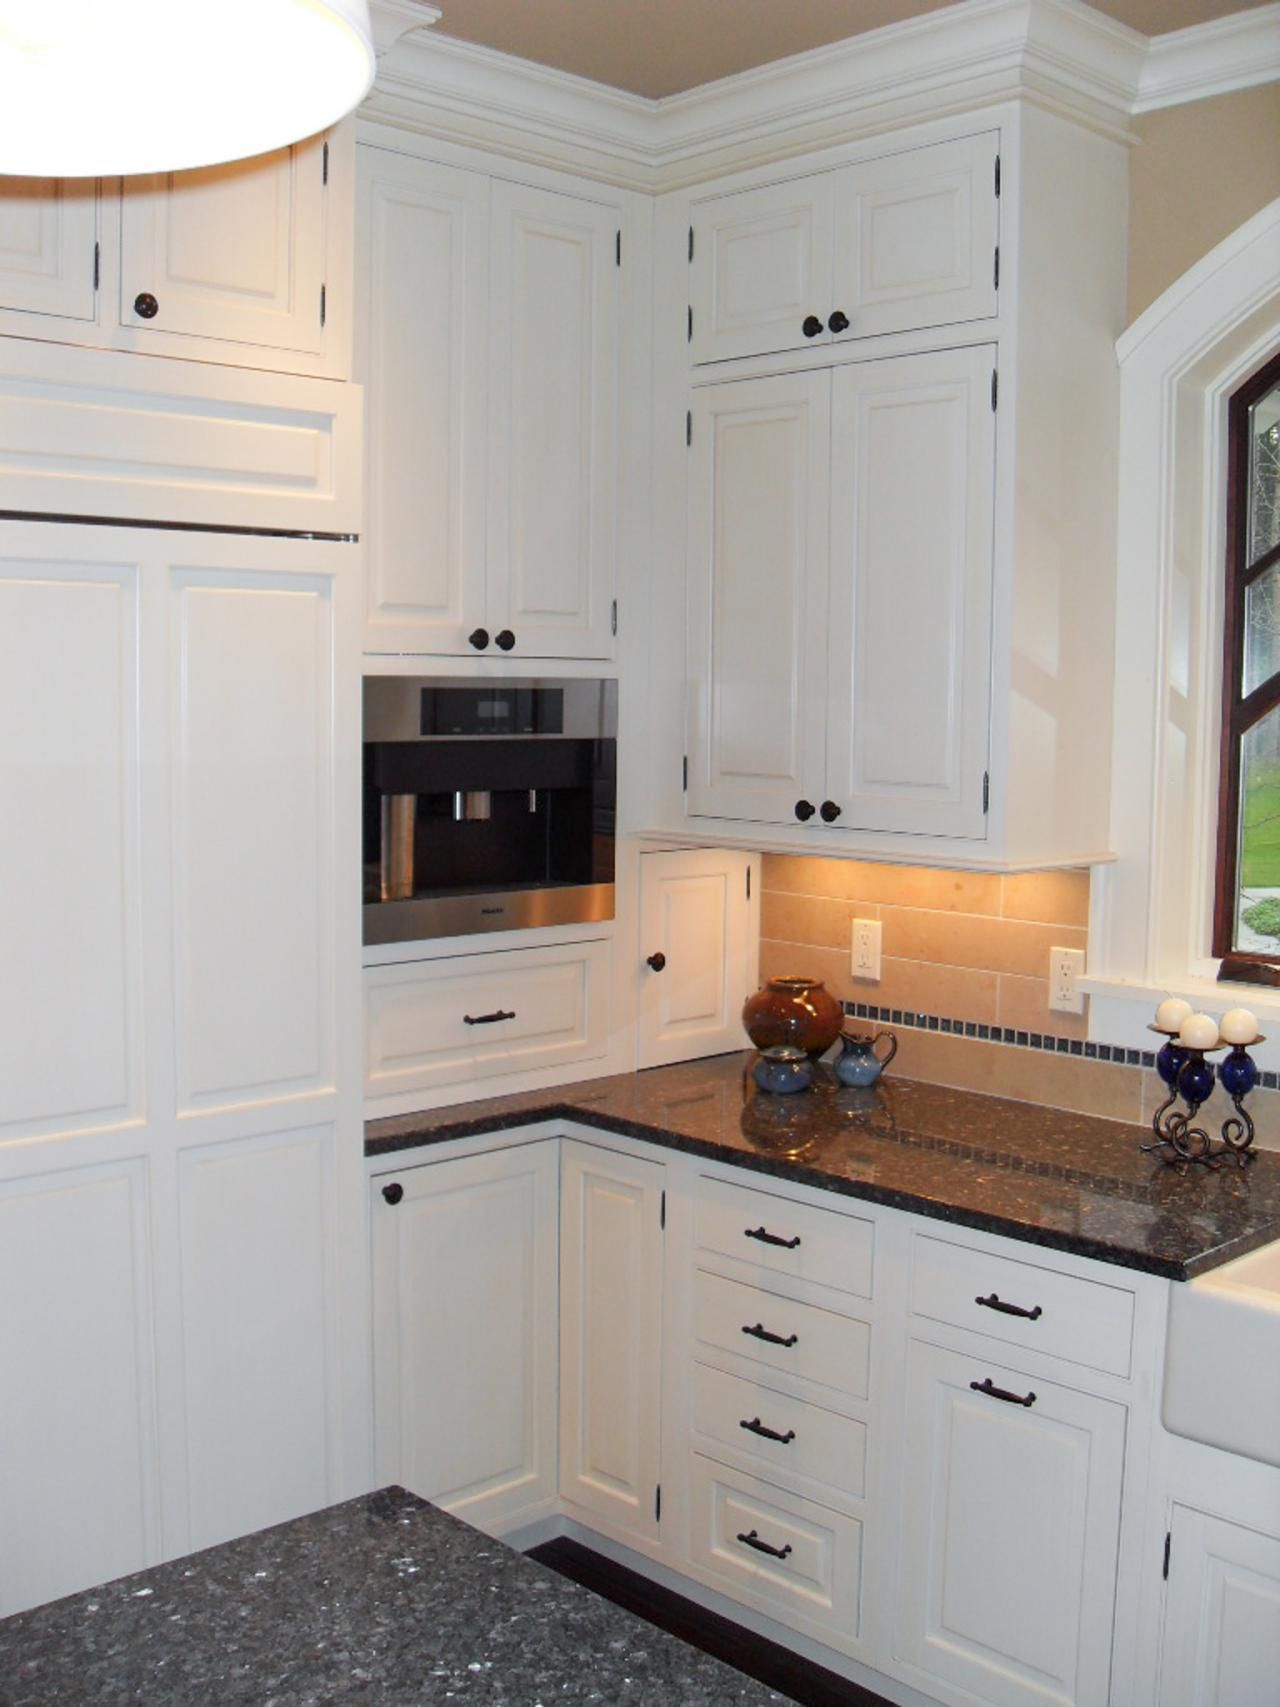 Stock Kitchen Cabinets Pictures Ideas Tips From Shaker Style